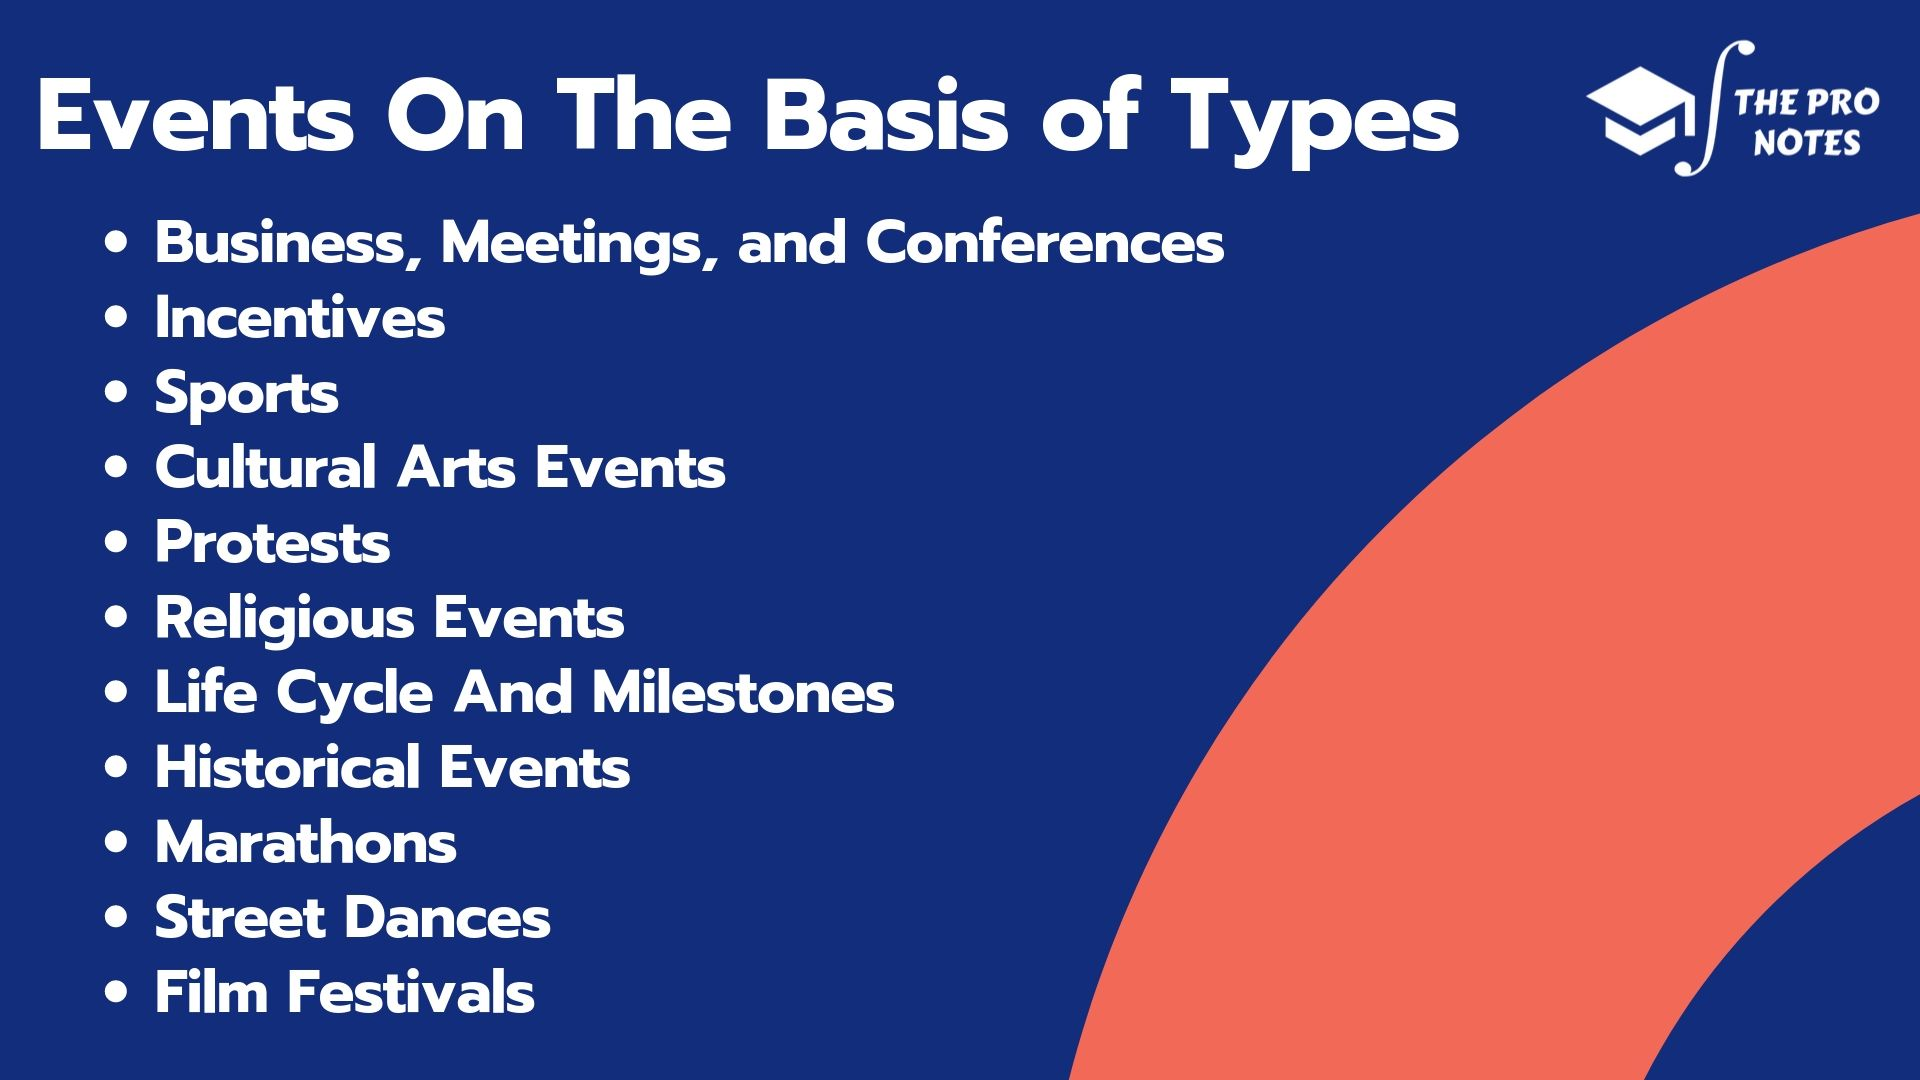 Events On The Basis of Types